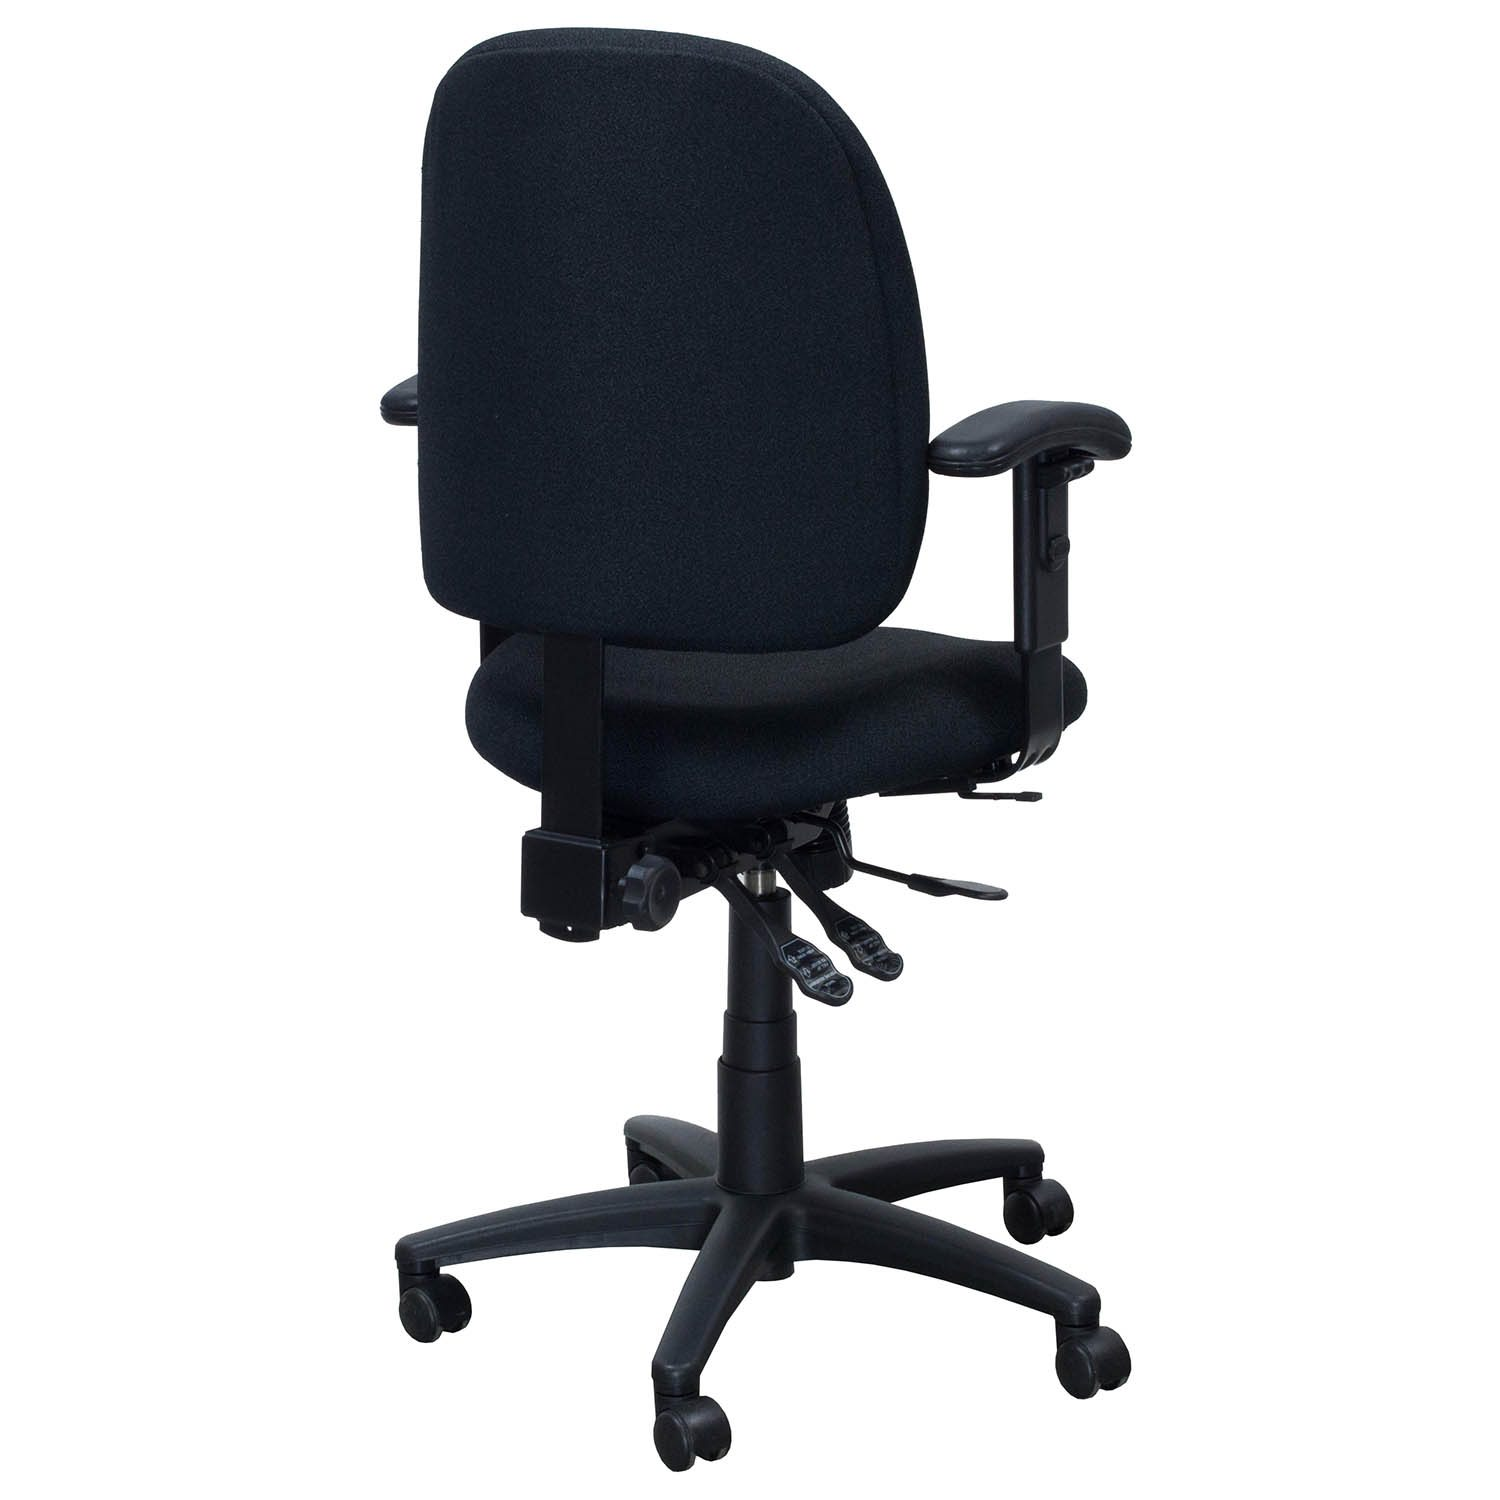 used computer chairs desk for bad backs uk n more task chair black national office